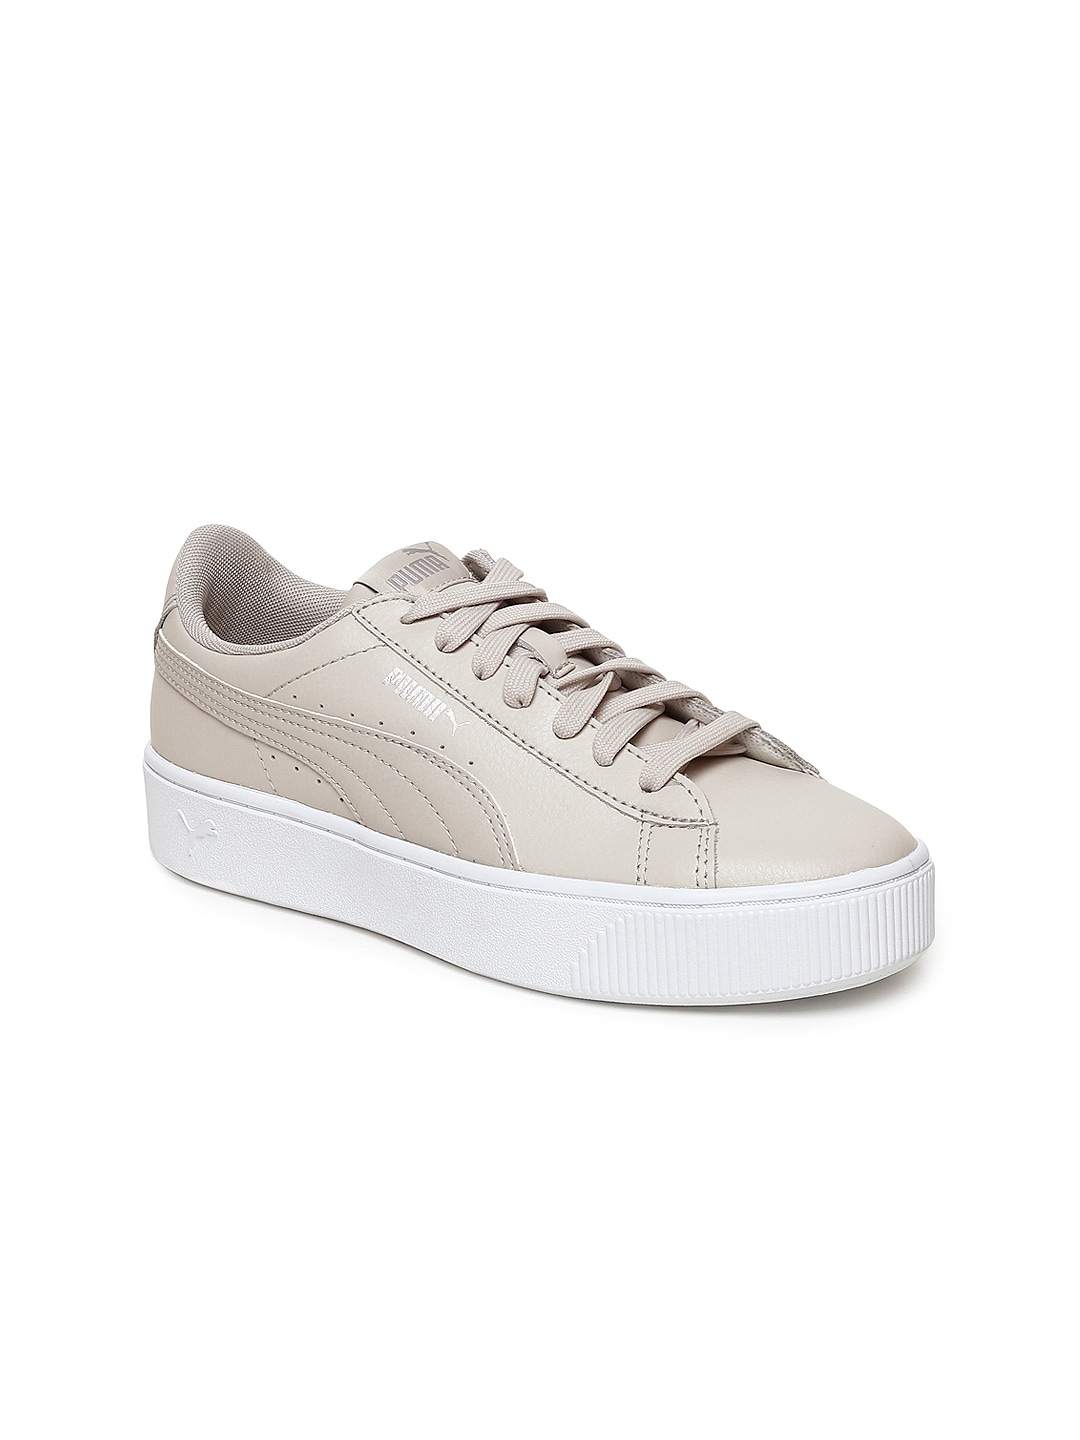 33c299ecf78 Puma Alibi - Buy Puma Alibi online in India